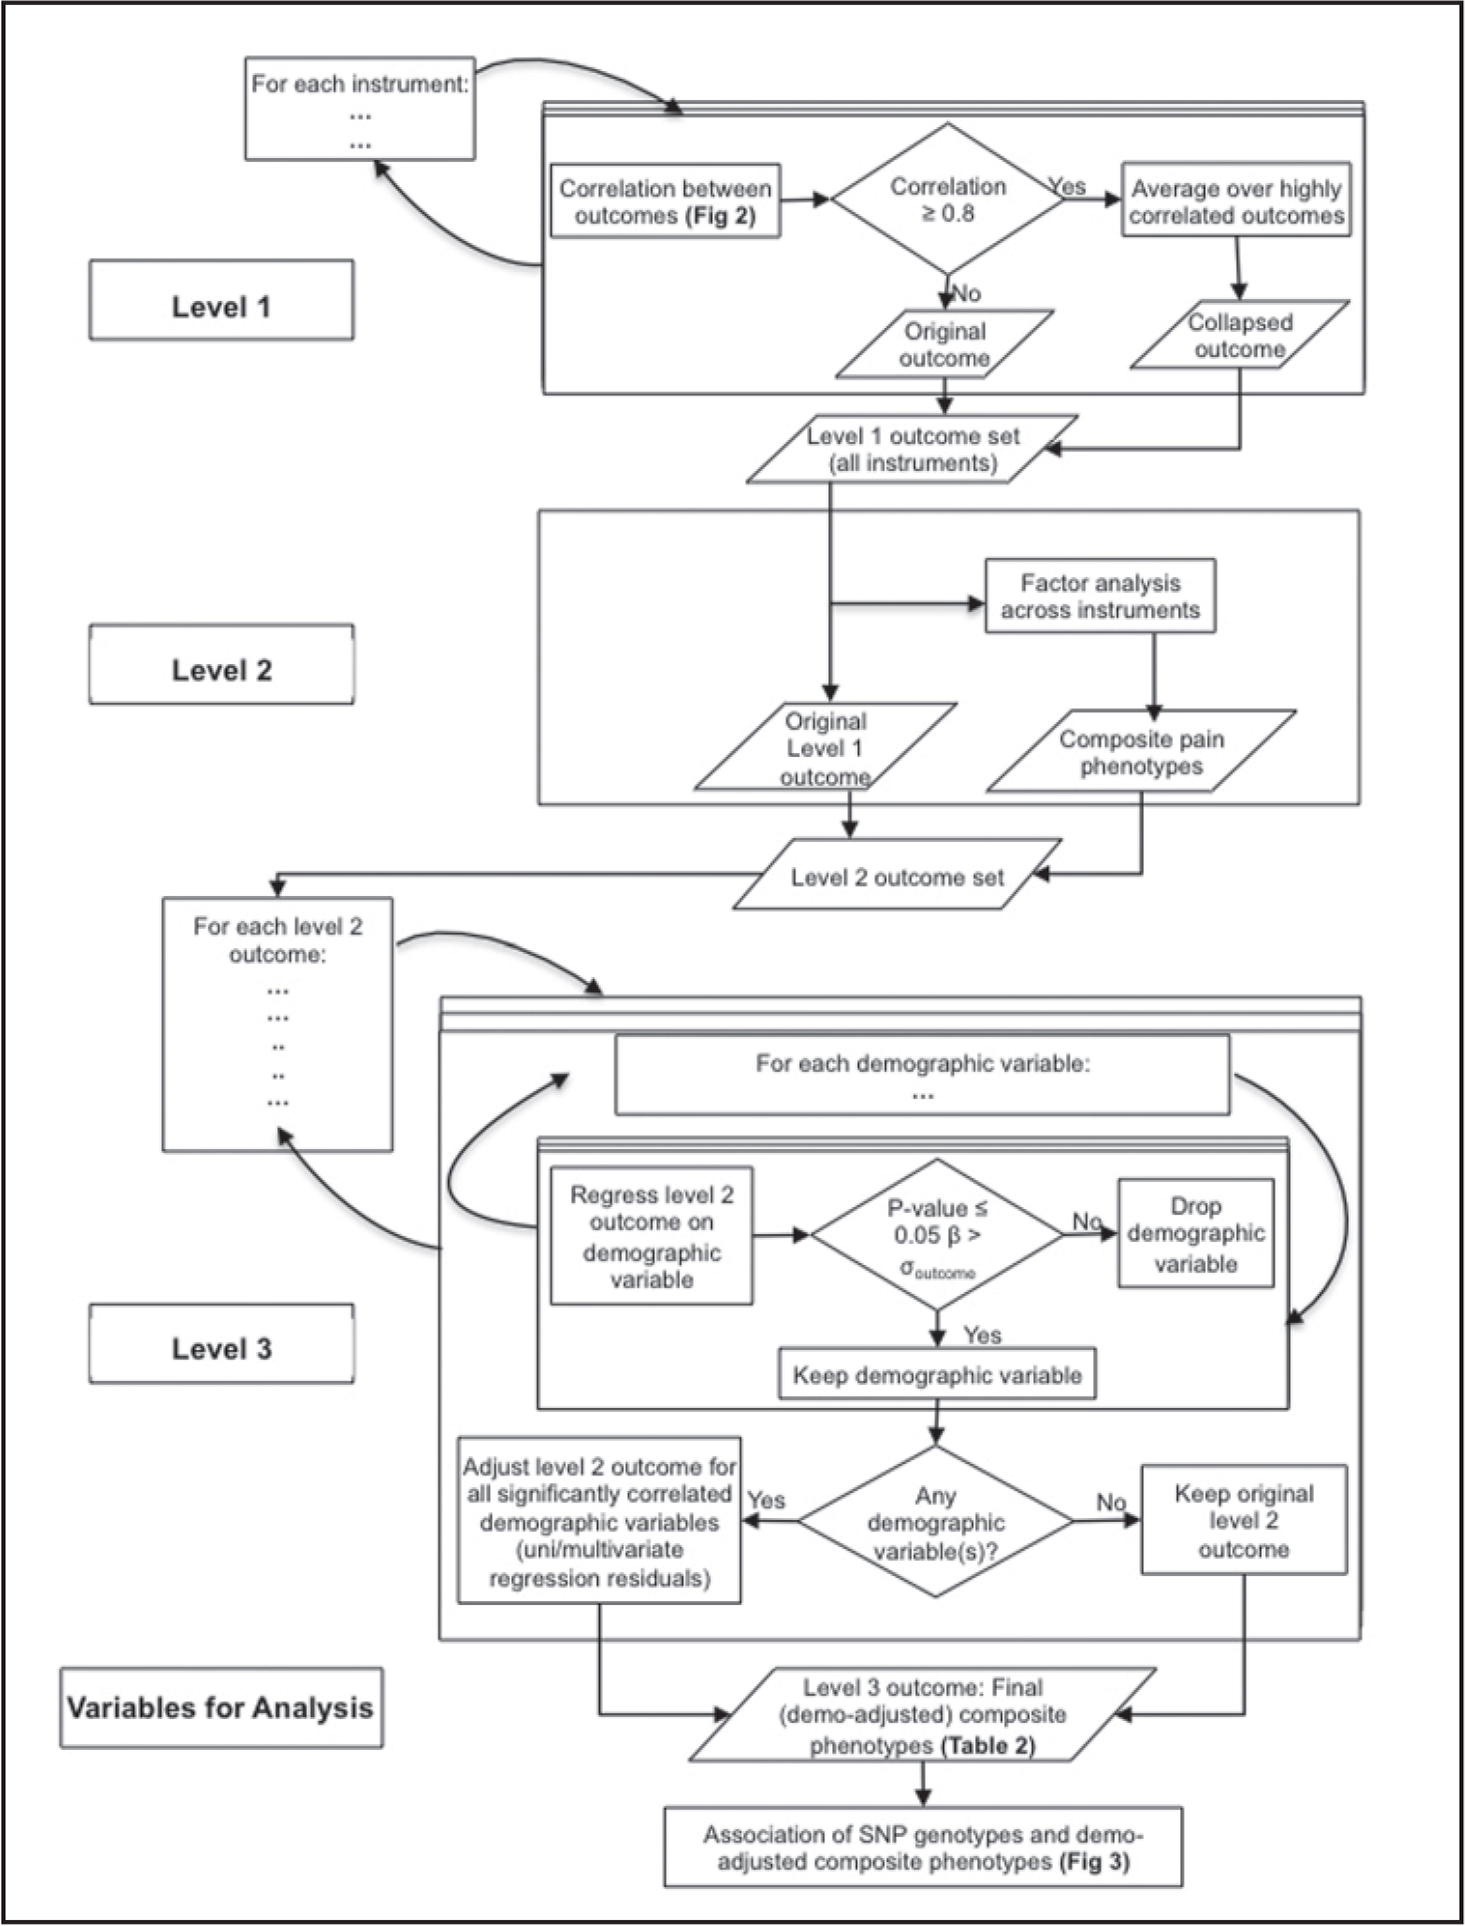 Flowchart for derivation of baseline osteoarthritis (OA) pain phenotypes.Note. SNP = single nucleotide polymorphism.